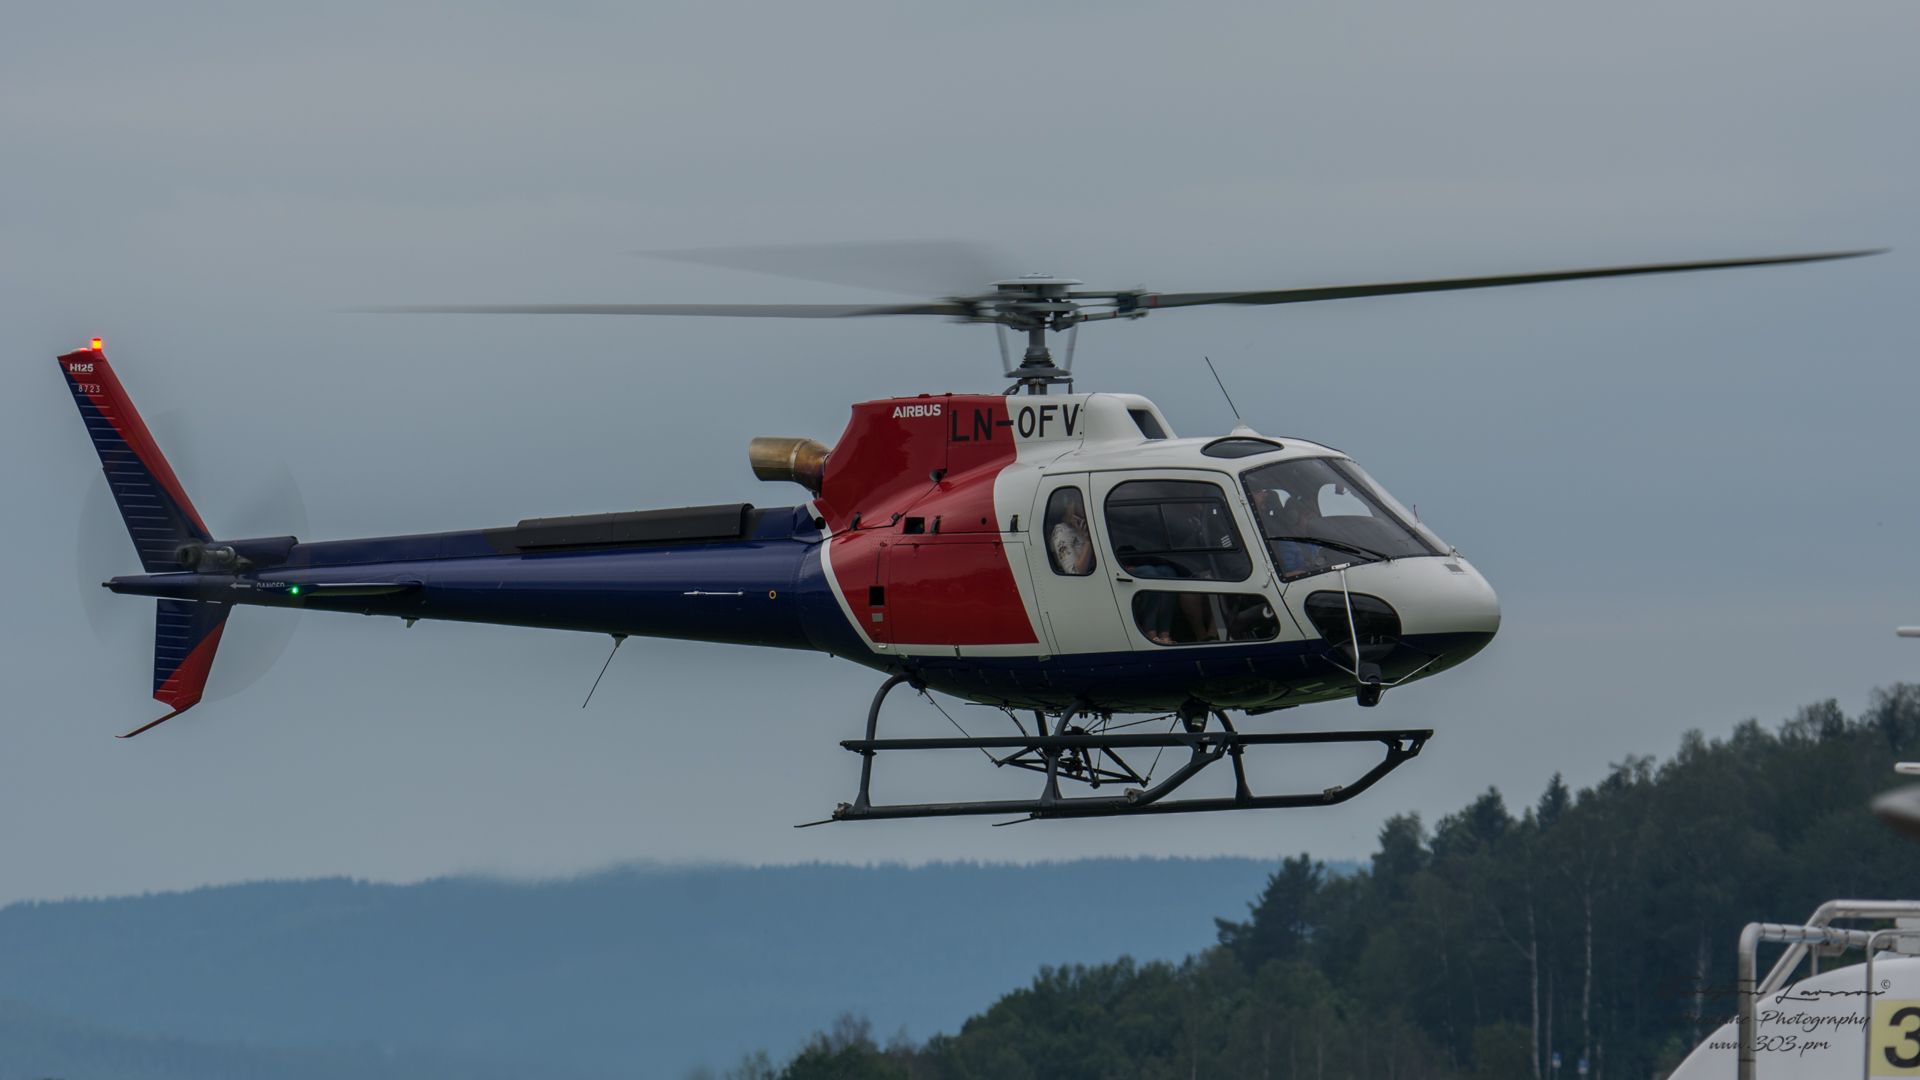 Airbus-Helicopter-AS-350-B3-LN-OFV-TBE_5511